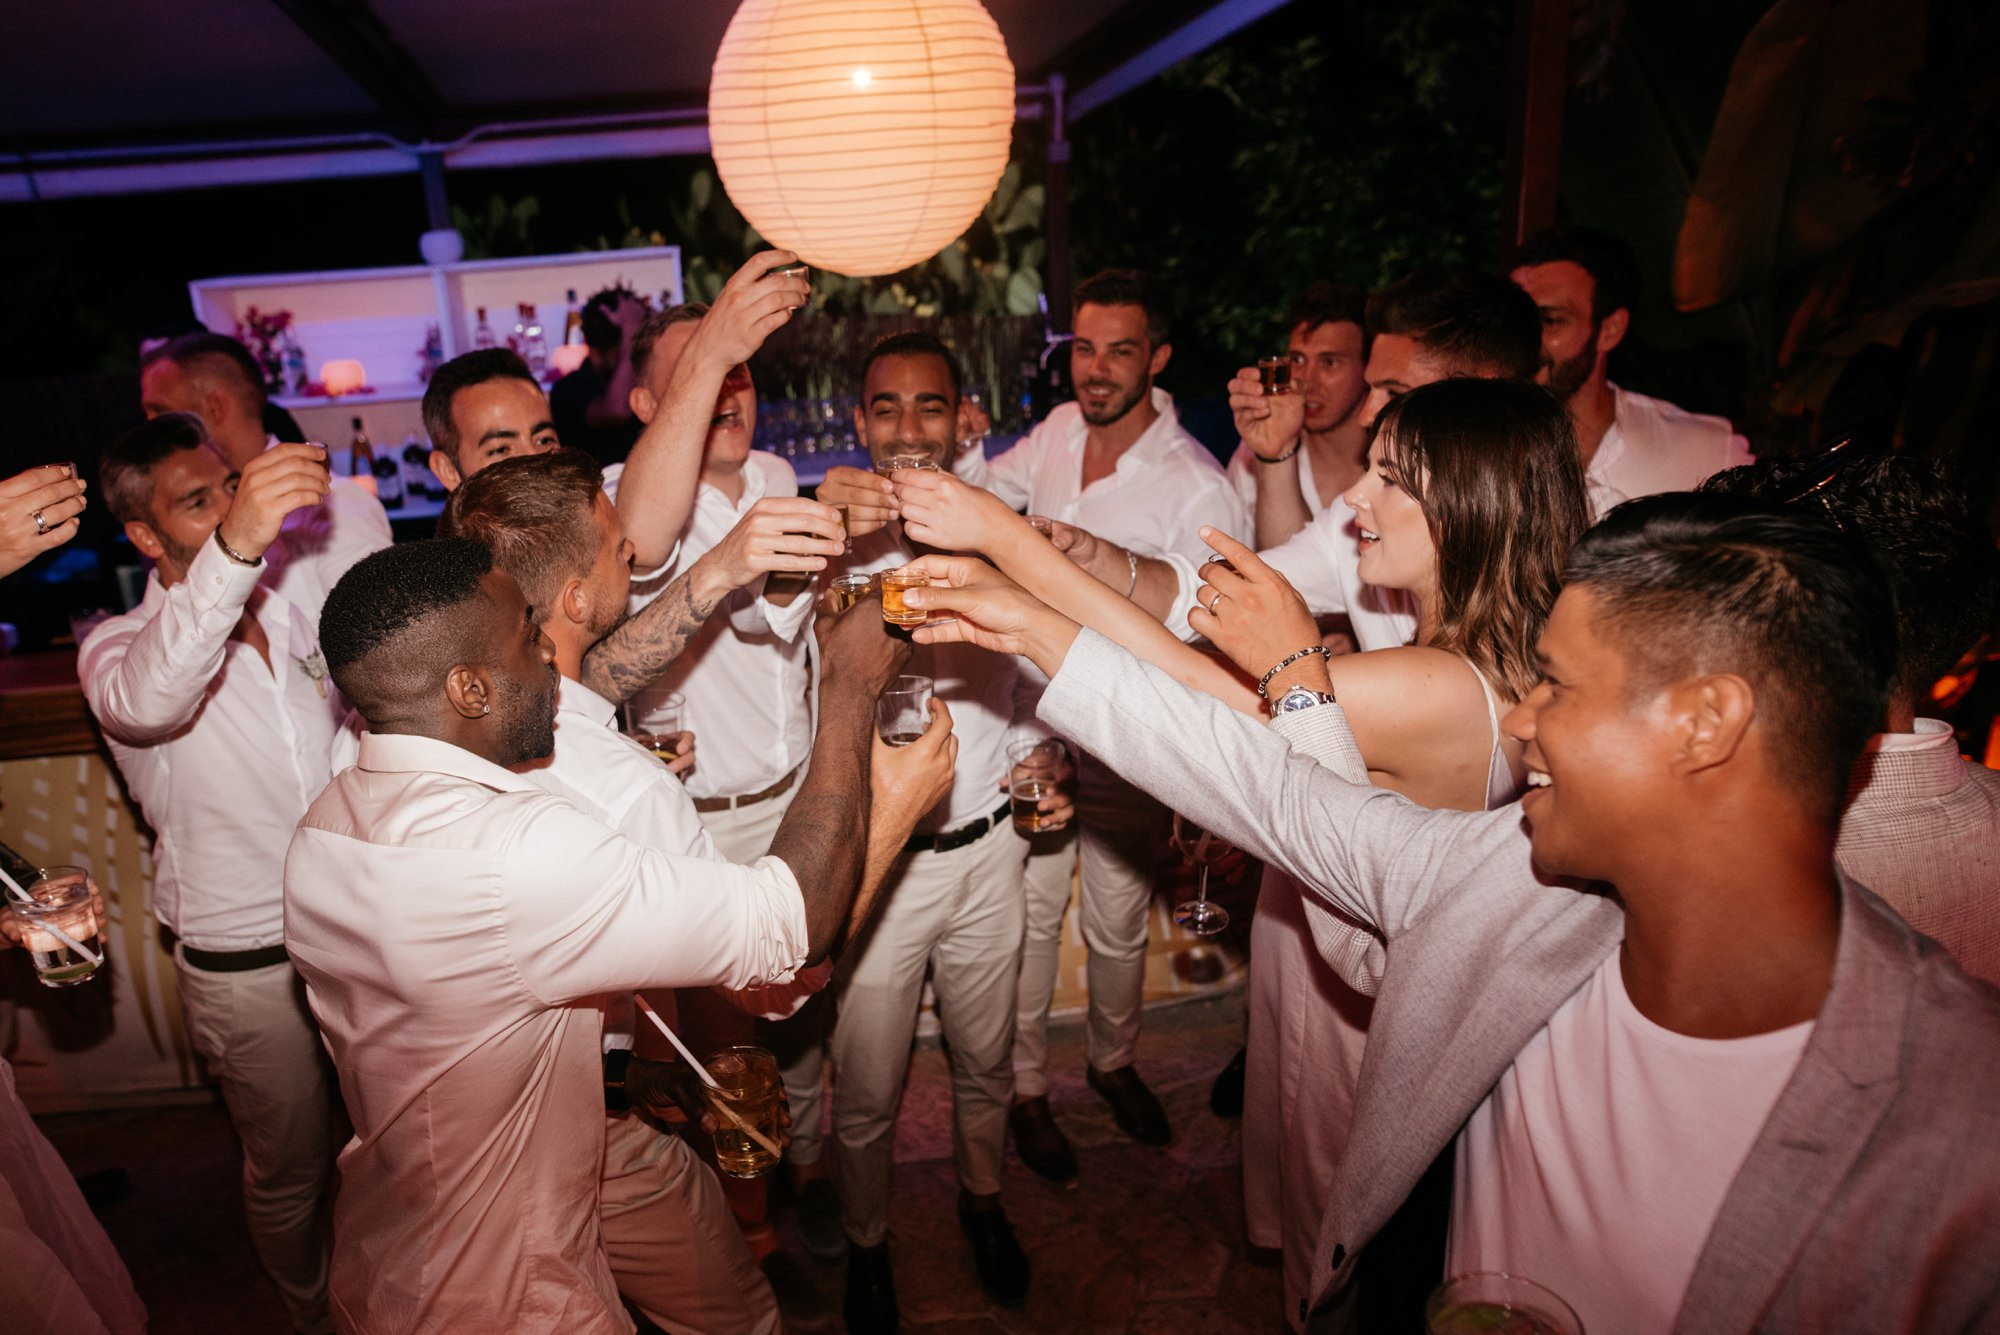 natural wedding photo destination la escollera ibiza 0111 1